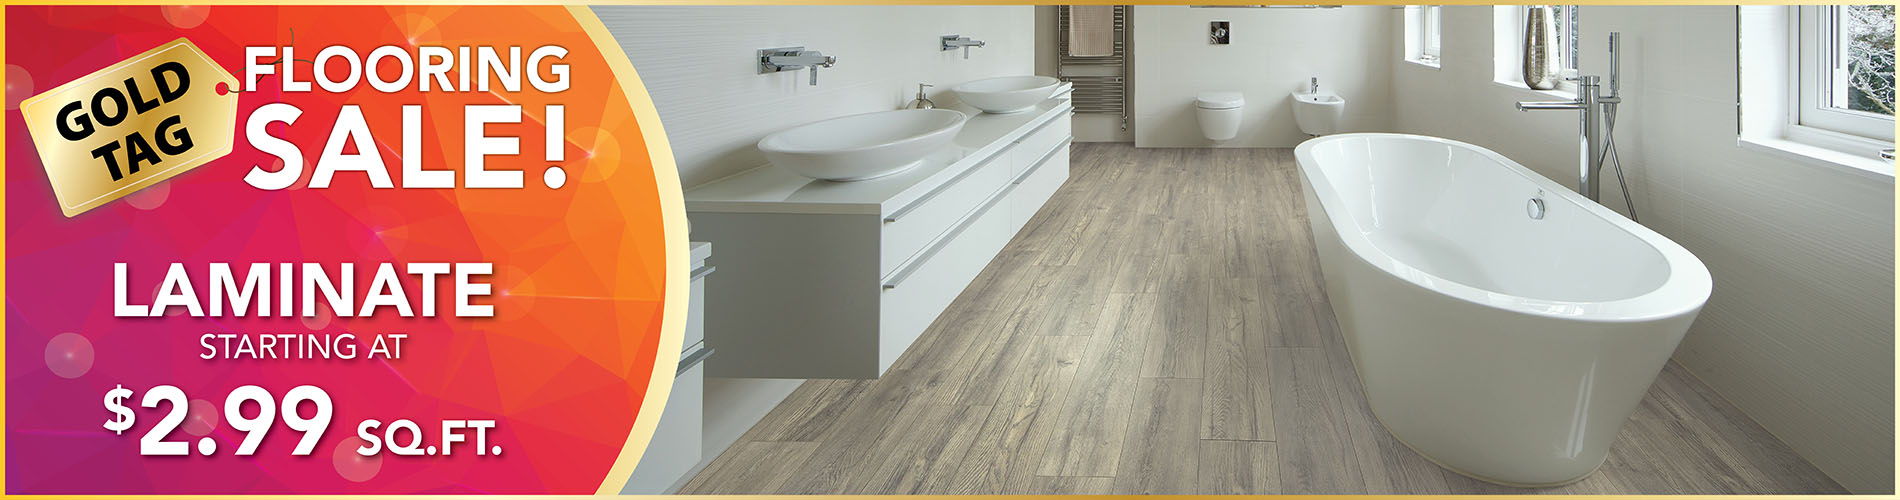 Laminate Flooring Sale $2.99 Sq.ft. at American Flooring in Holt, MI